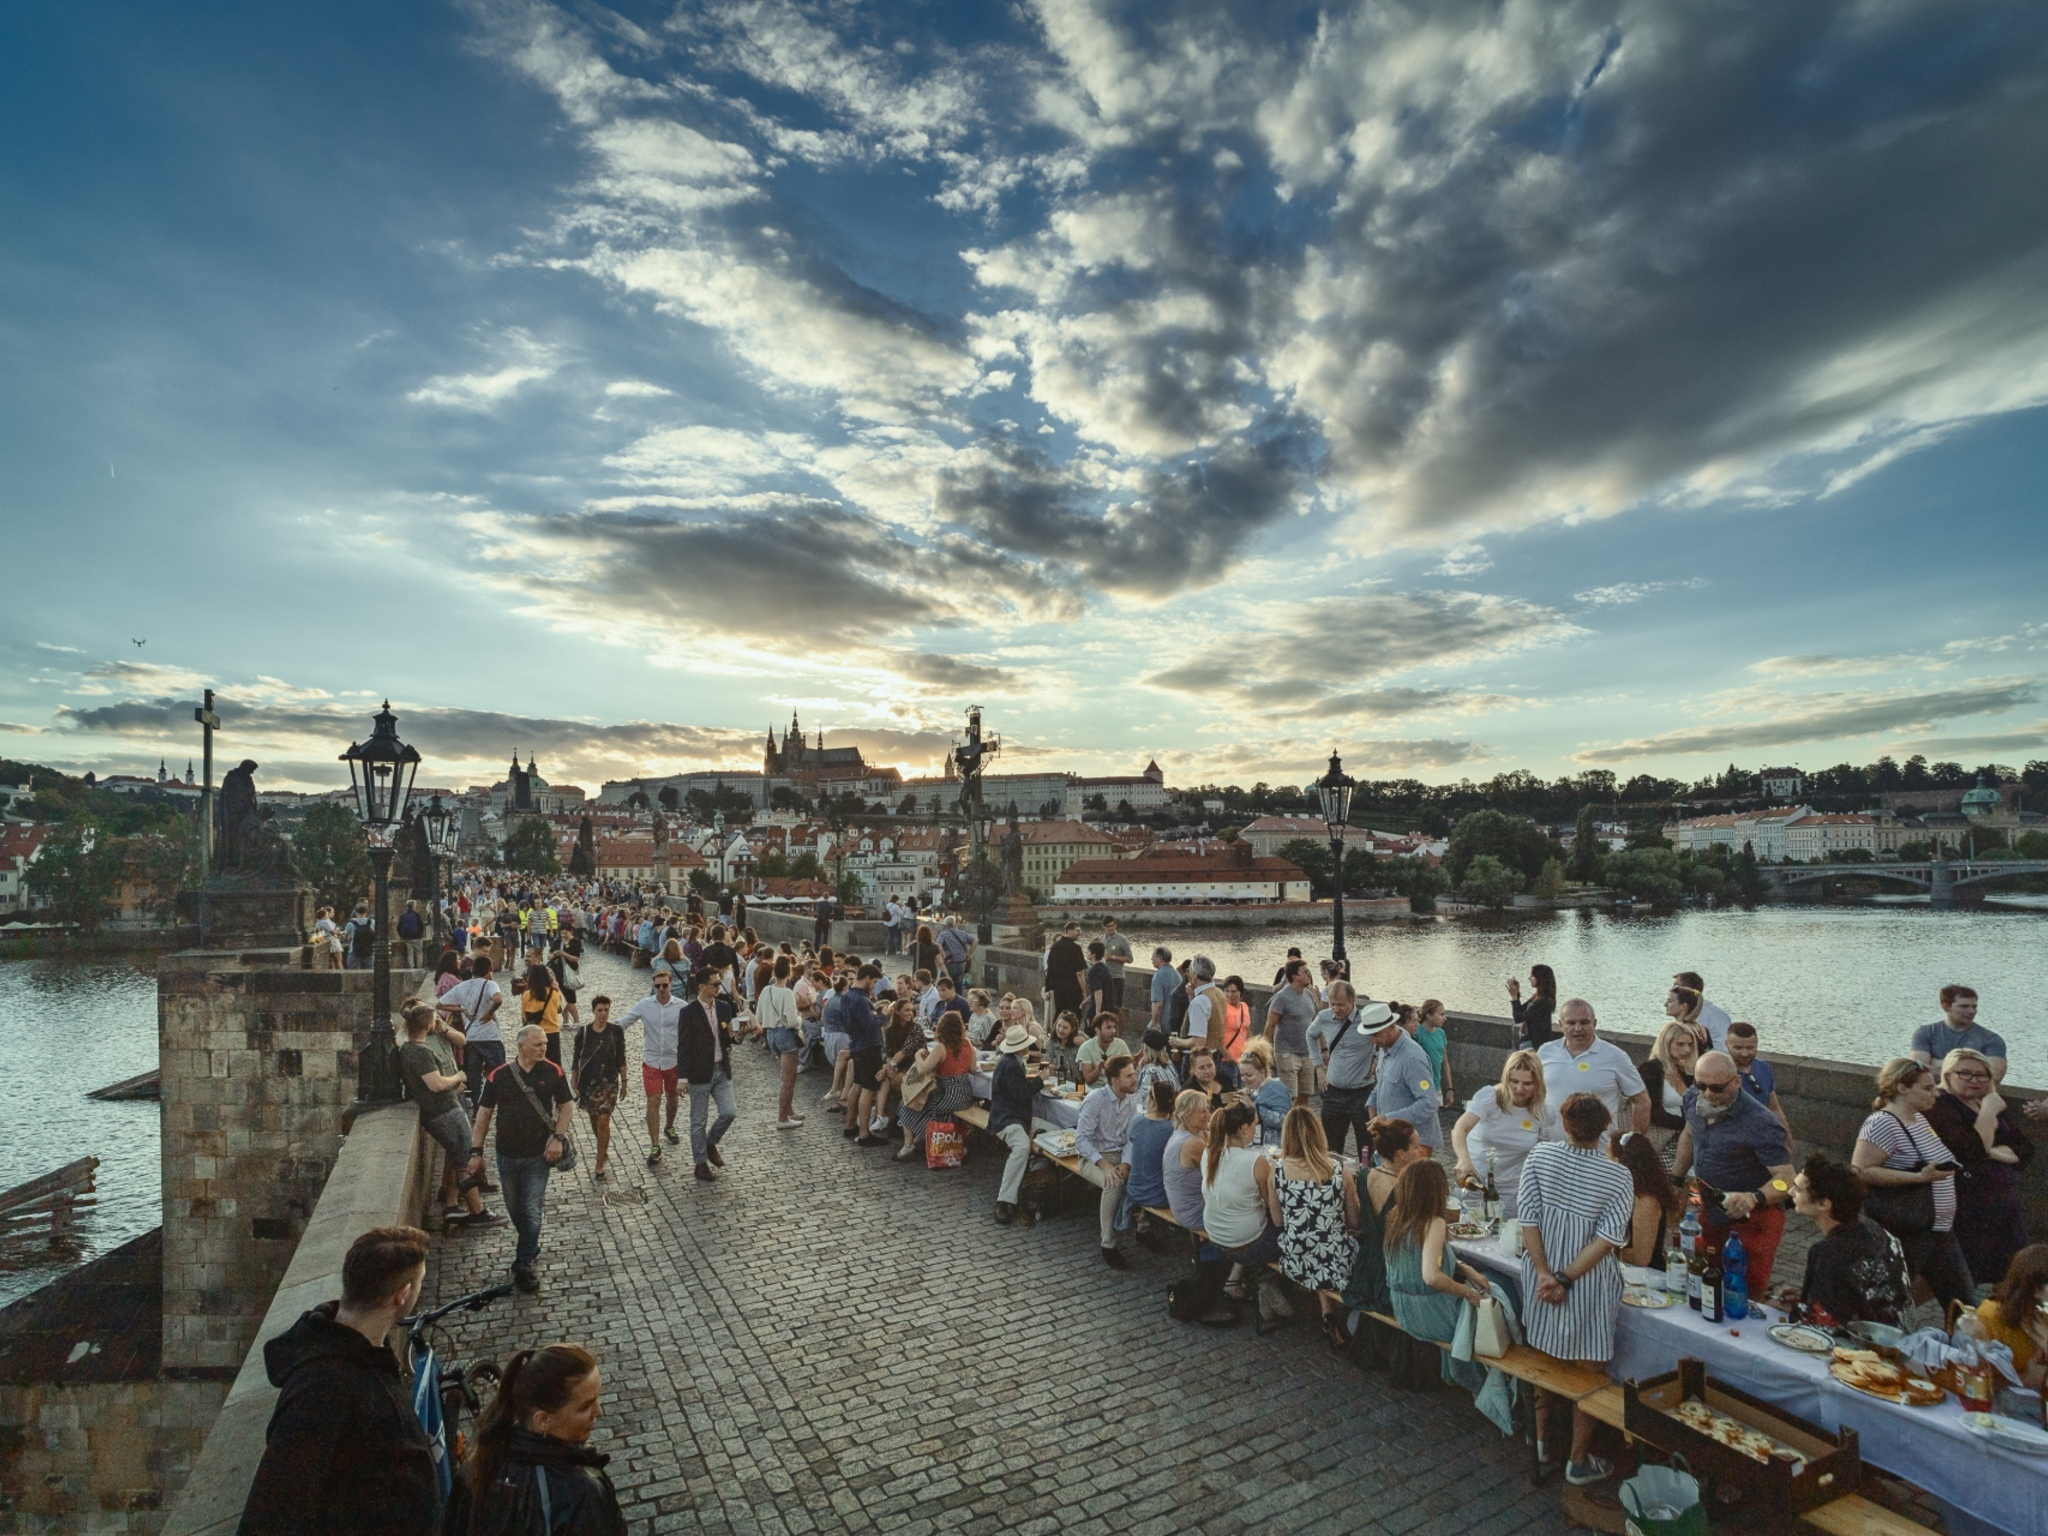 Prague held a feast on the Charles Bridge